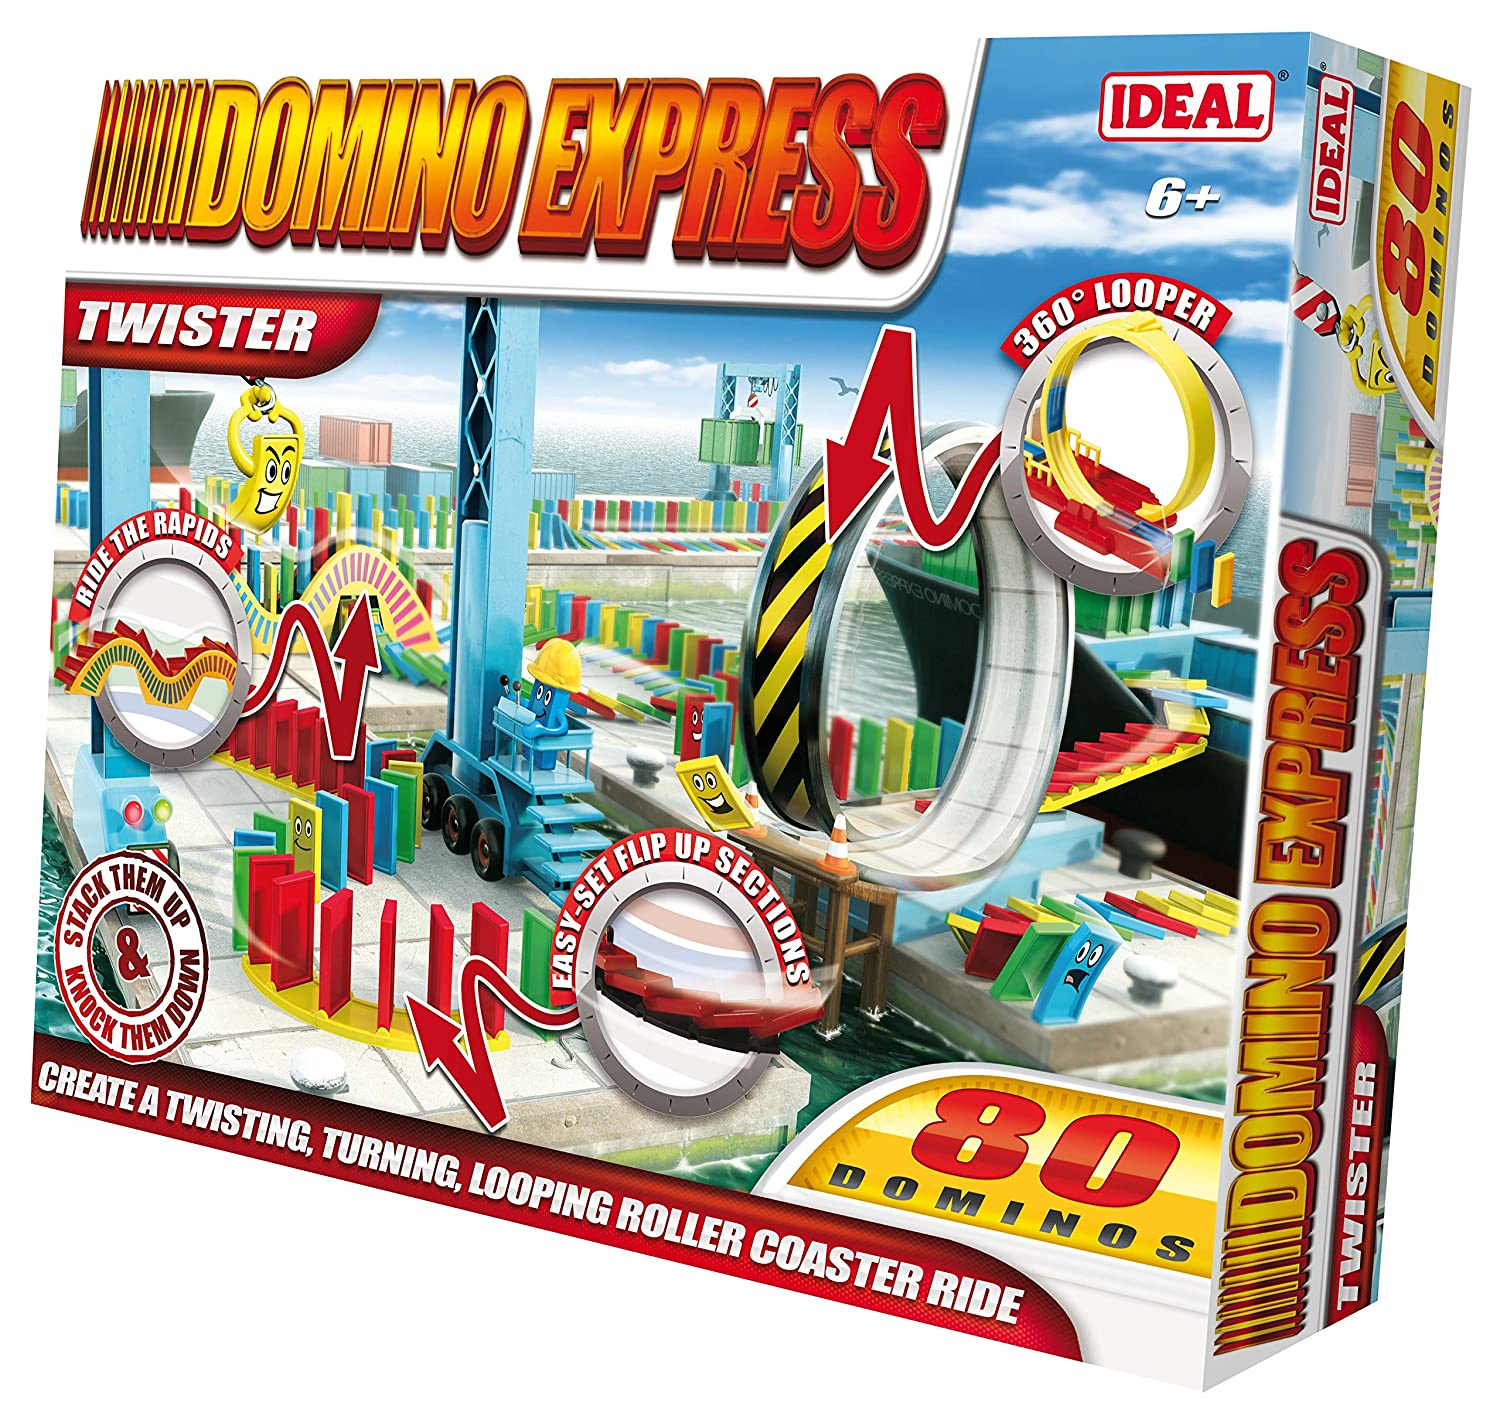 Ideal Domino Express Twister from 9820